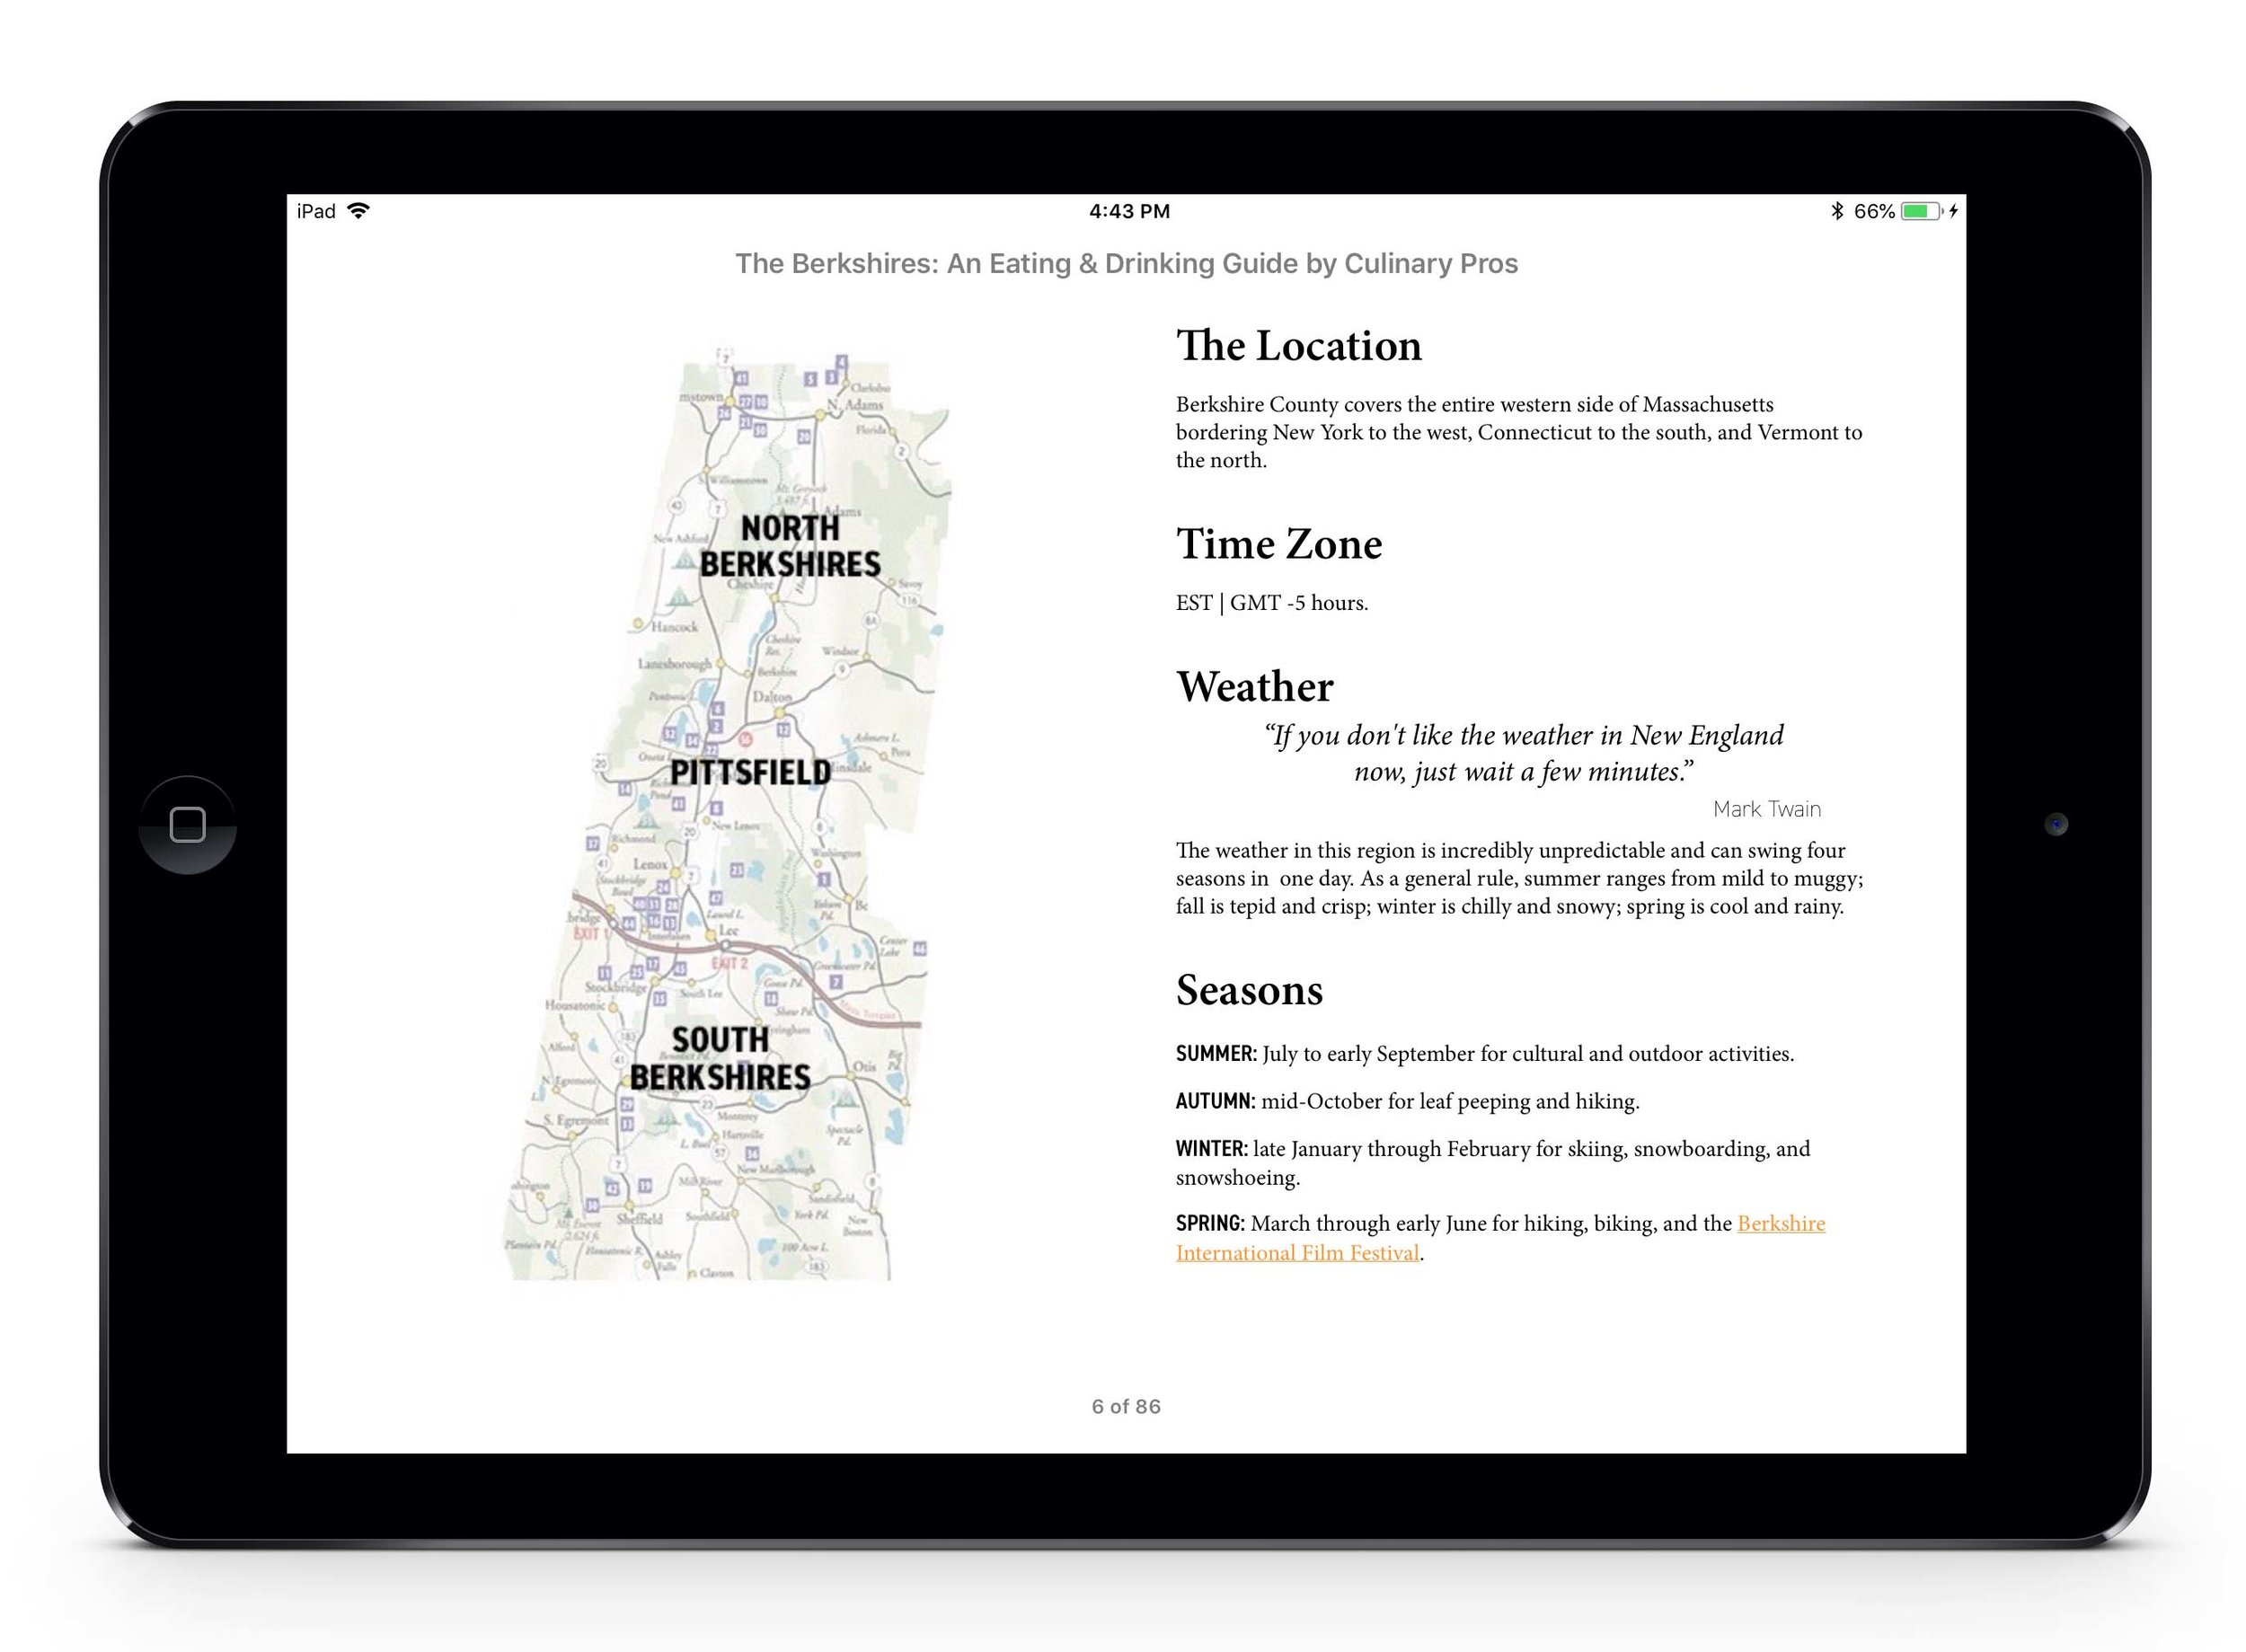 iPadAir_Berkshires_Screenshots_4.4.jpg